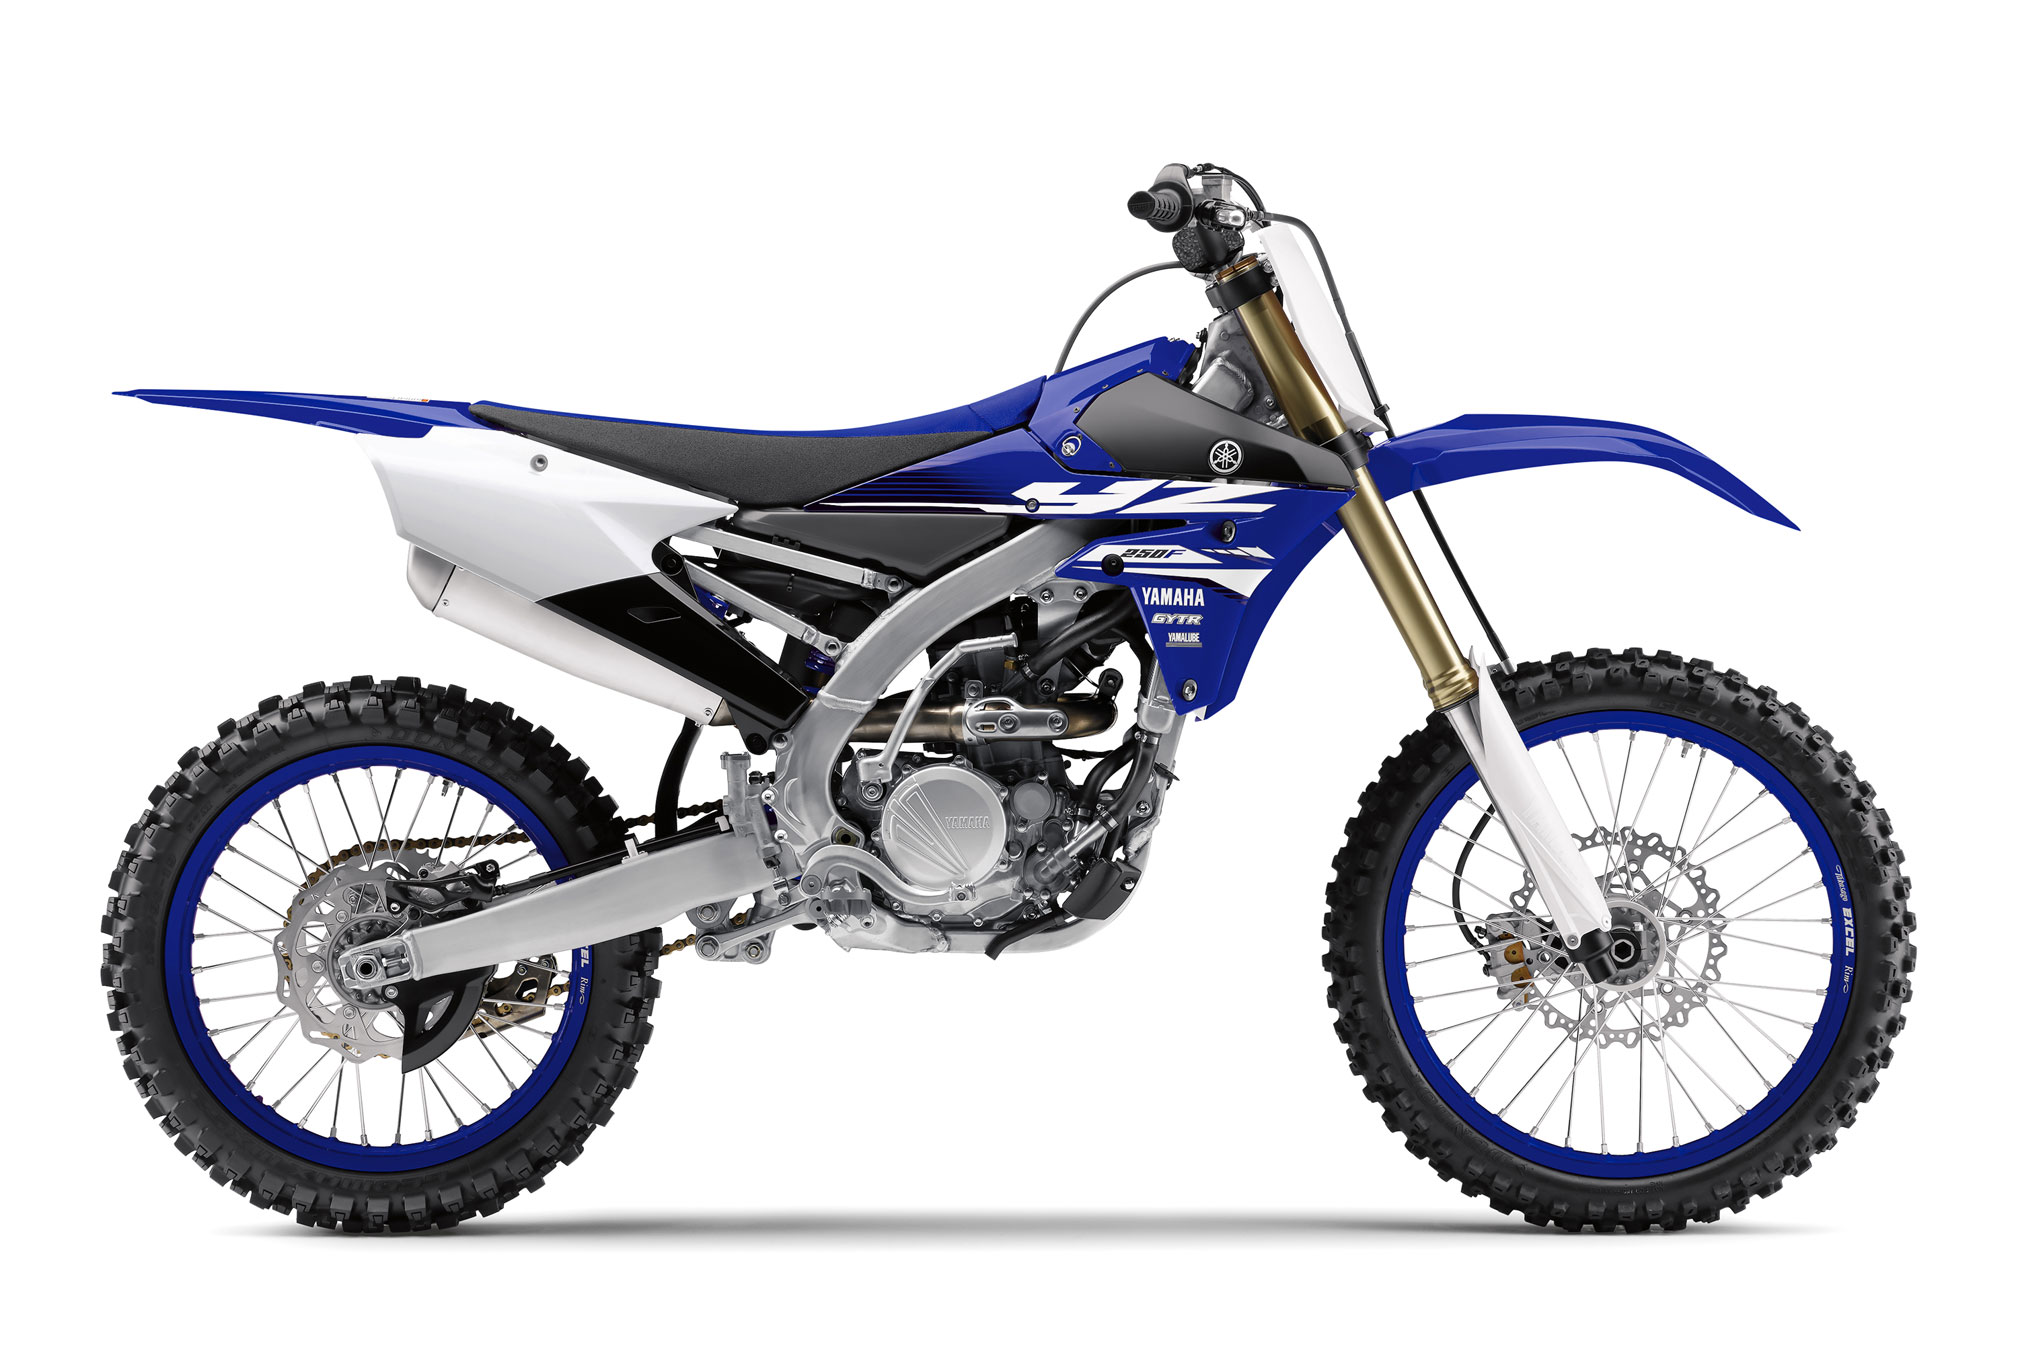 2018 yamaha yz250f review totalmotorcycle for Yamaha new motorcycles 2018